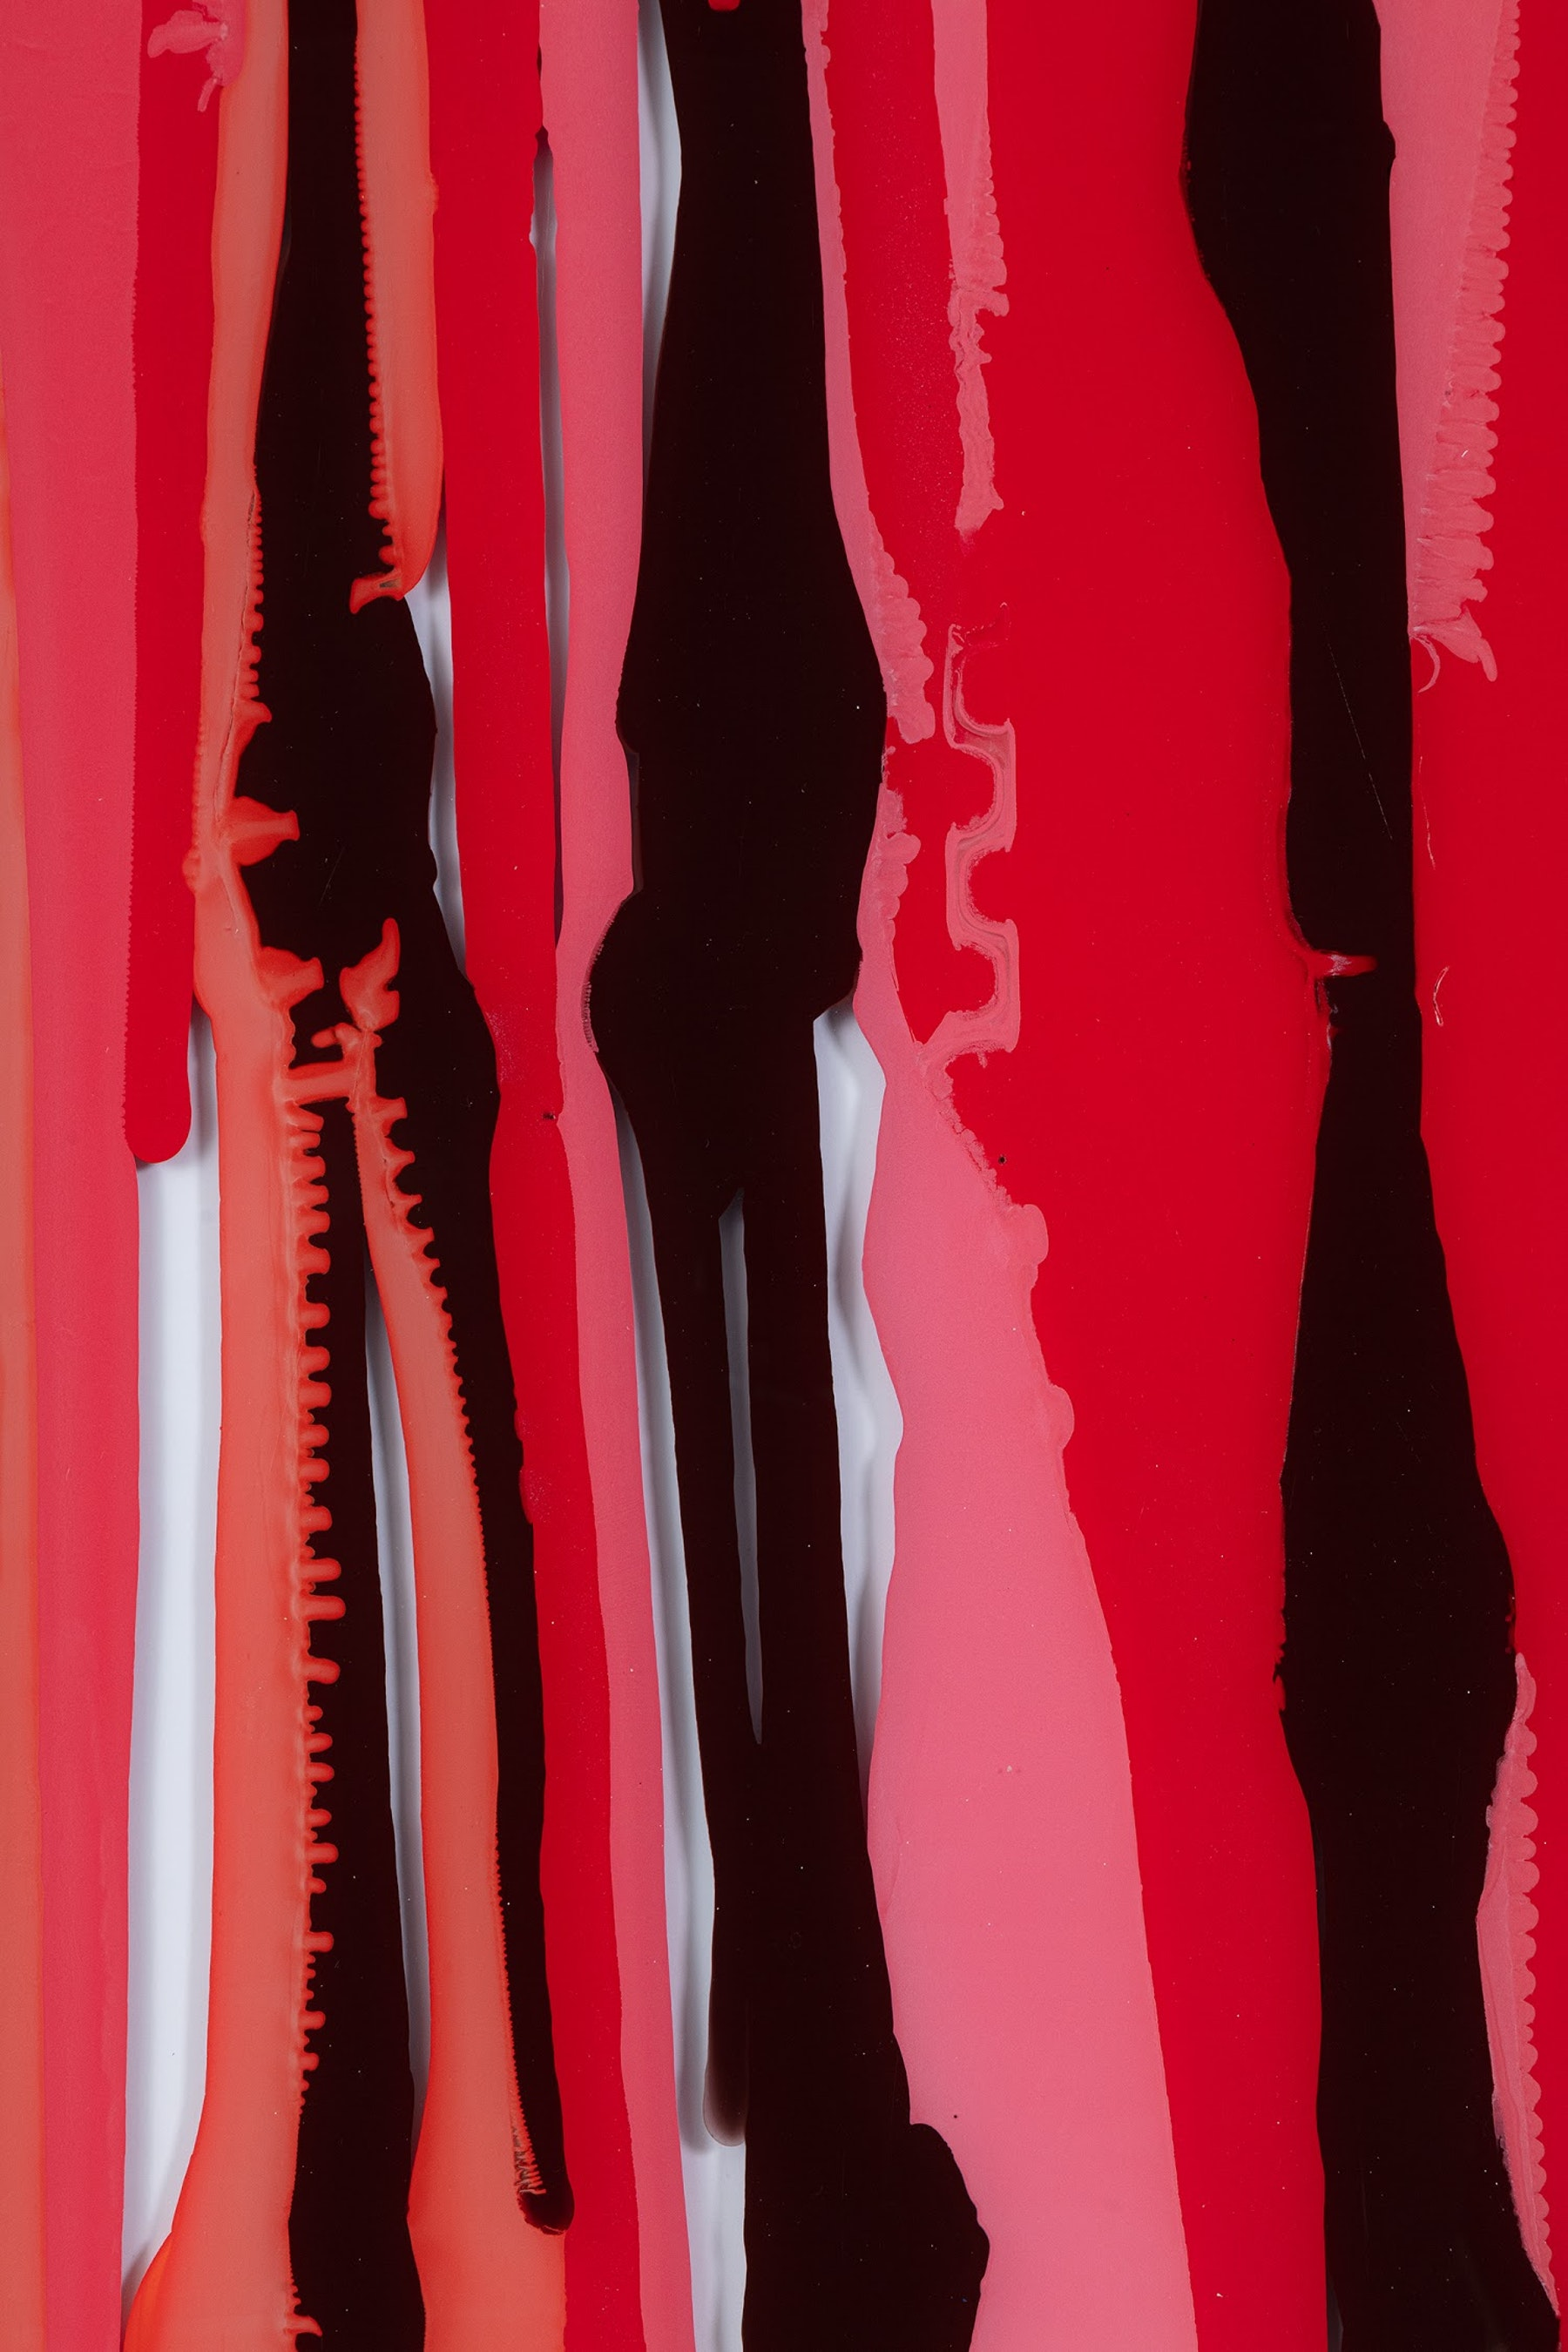 """Yunhee Min """"Untitled (up and down with red),"""" 2020 Enamel, acrylic on starphire tempered glass with aluminum frame 45 ¹⁄₄"""" x 34 ¹⁄₄"""" x 1 ¹⁄₂"""" [HxWxD] (114.94 x 87 x 3.81 cm) Inventory #MIN360 Courtesy of the artist and Vielmetter Los Angeles Photo credit: Evan Bedford"""